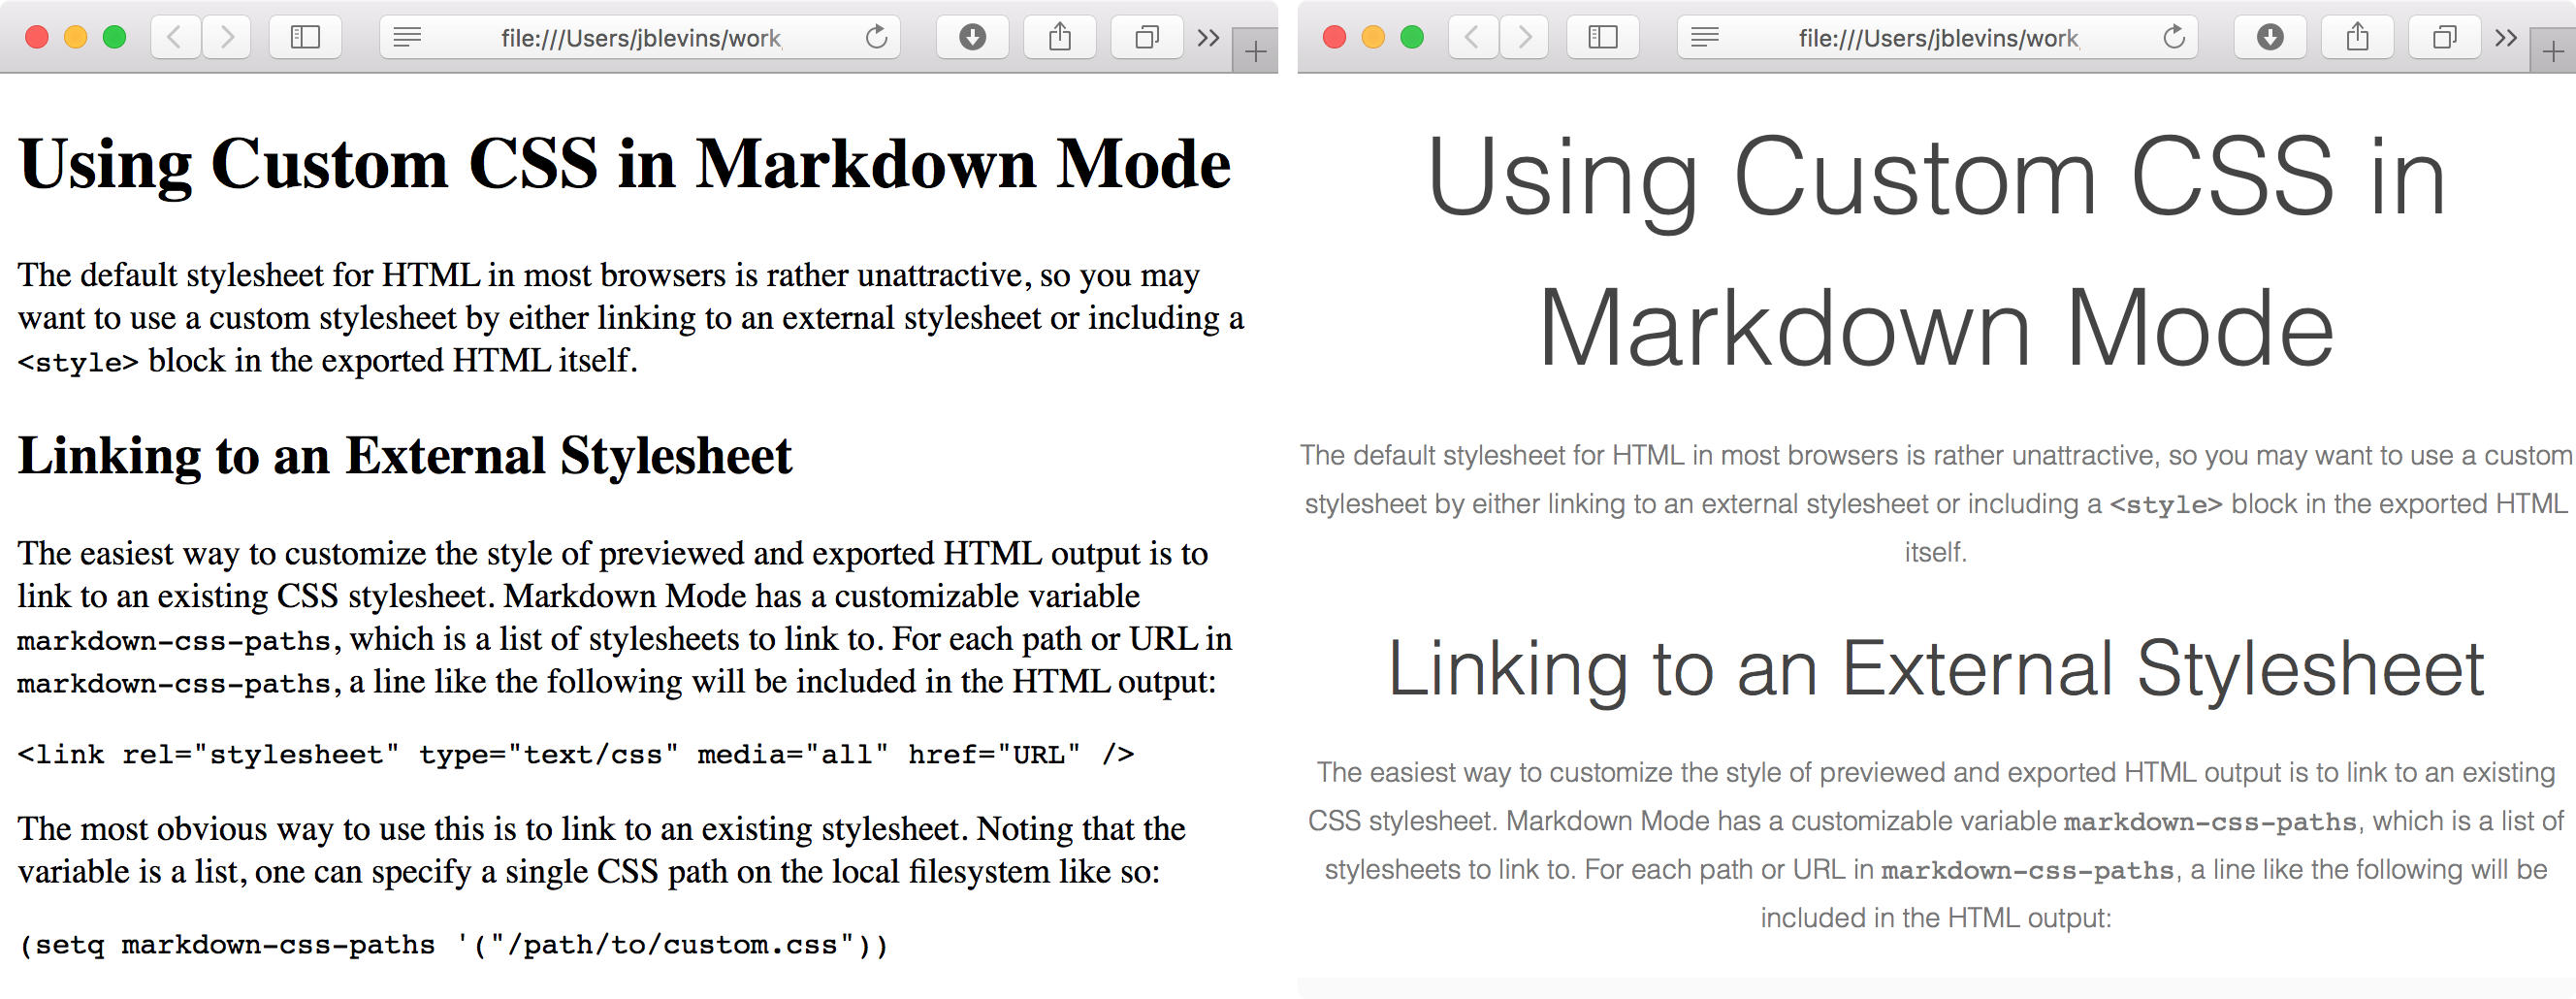 Custom CSS in Markdown Mode Output